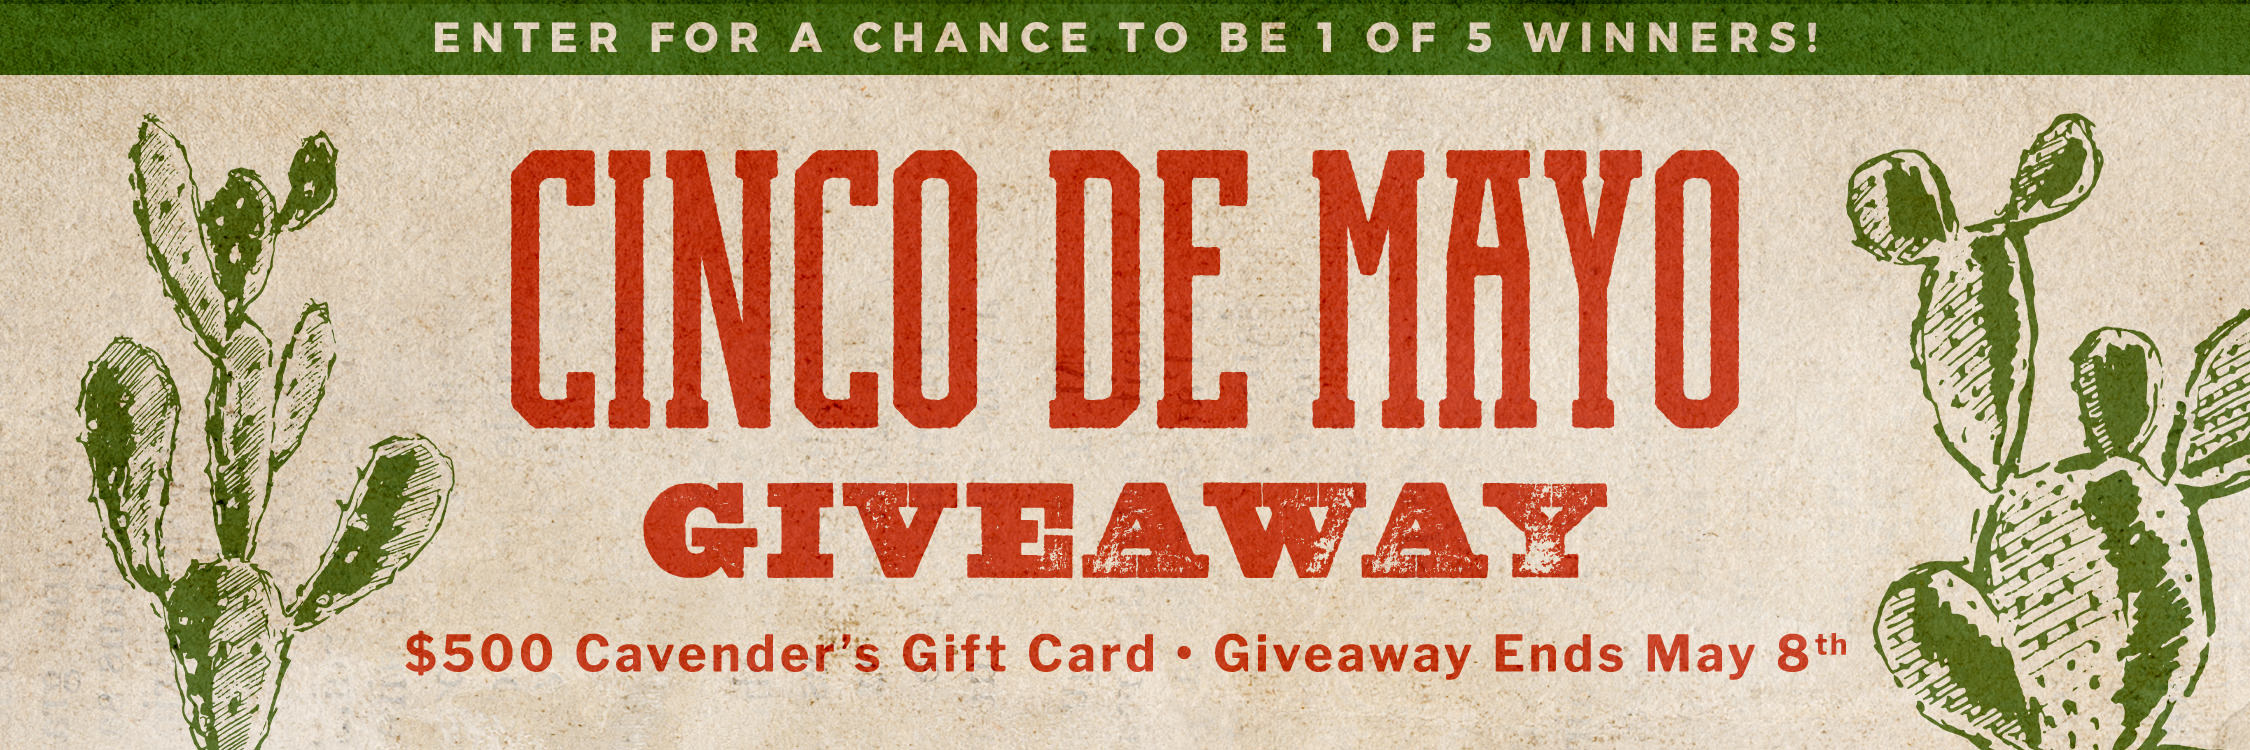 Register to win one of 5 $500 Cavender's Gift Cards now thru May 8th